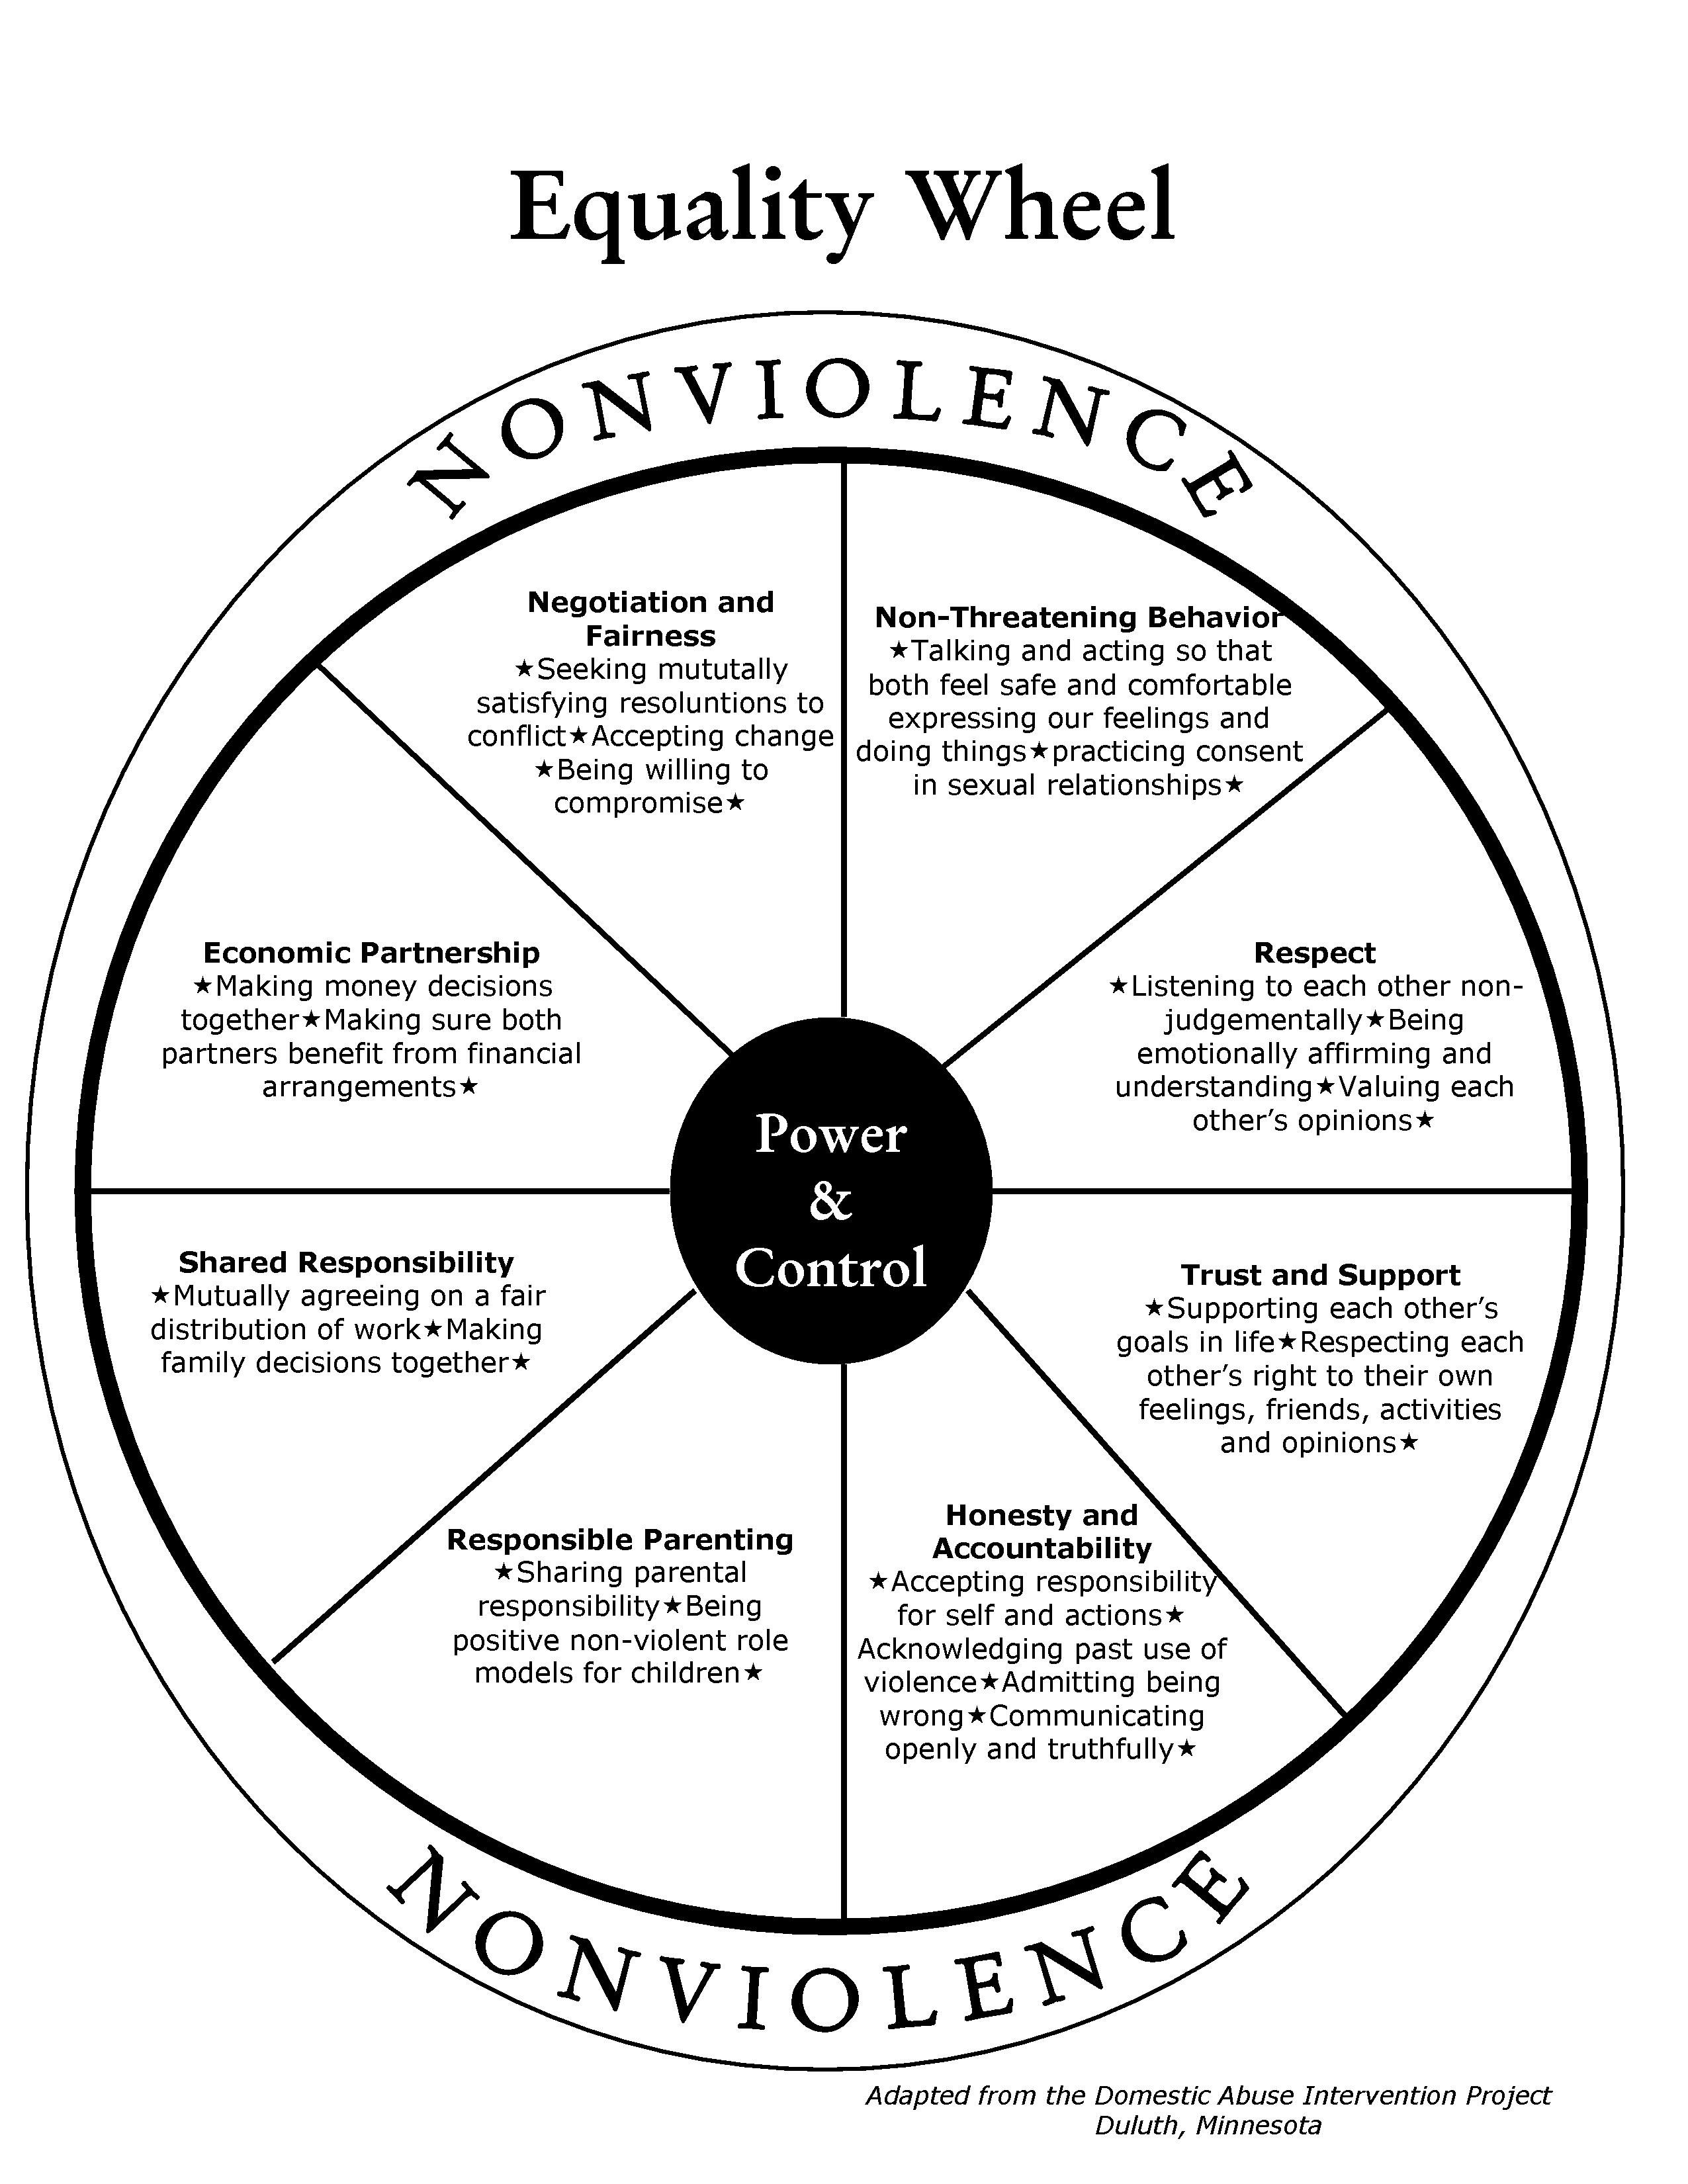 Gender Neutral Equality Wheel Mdw